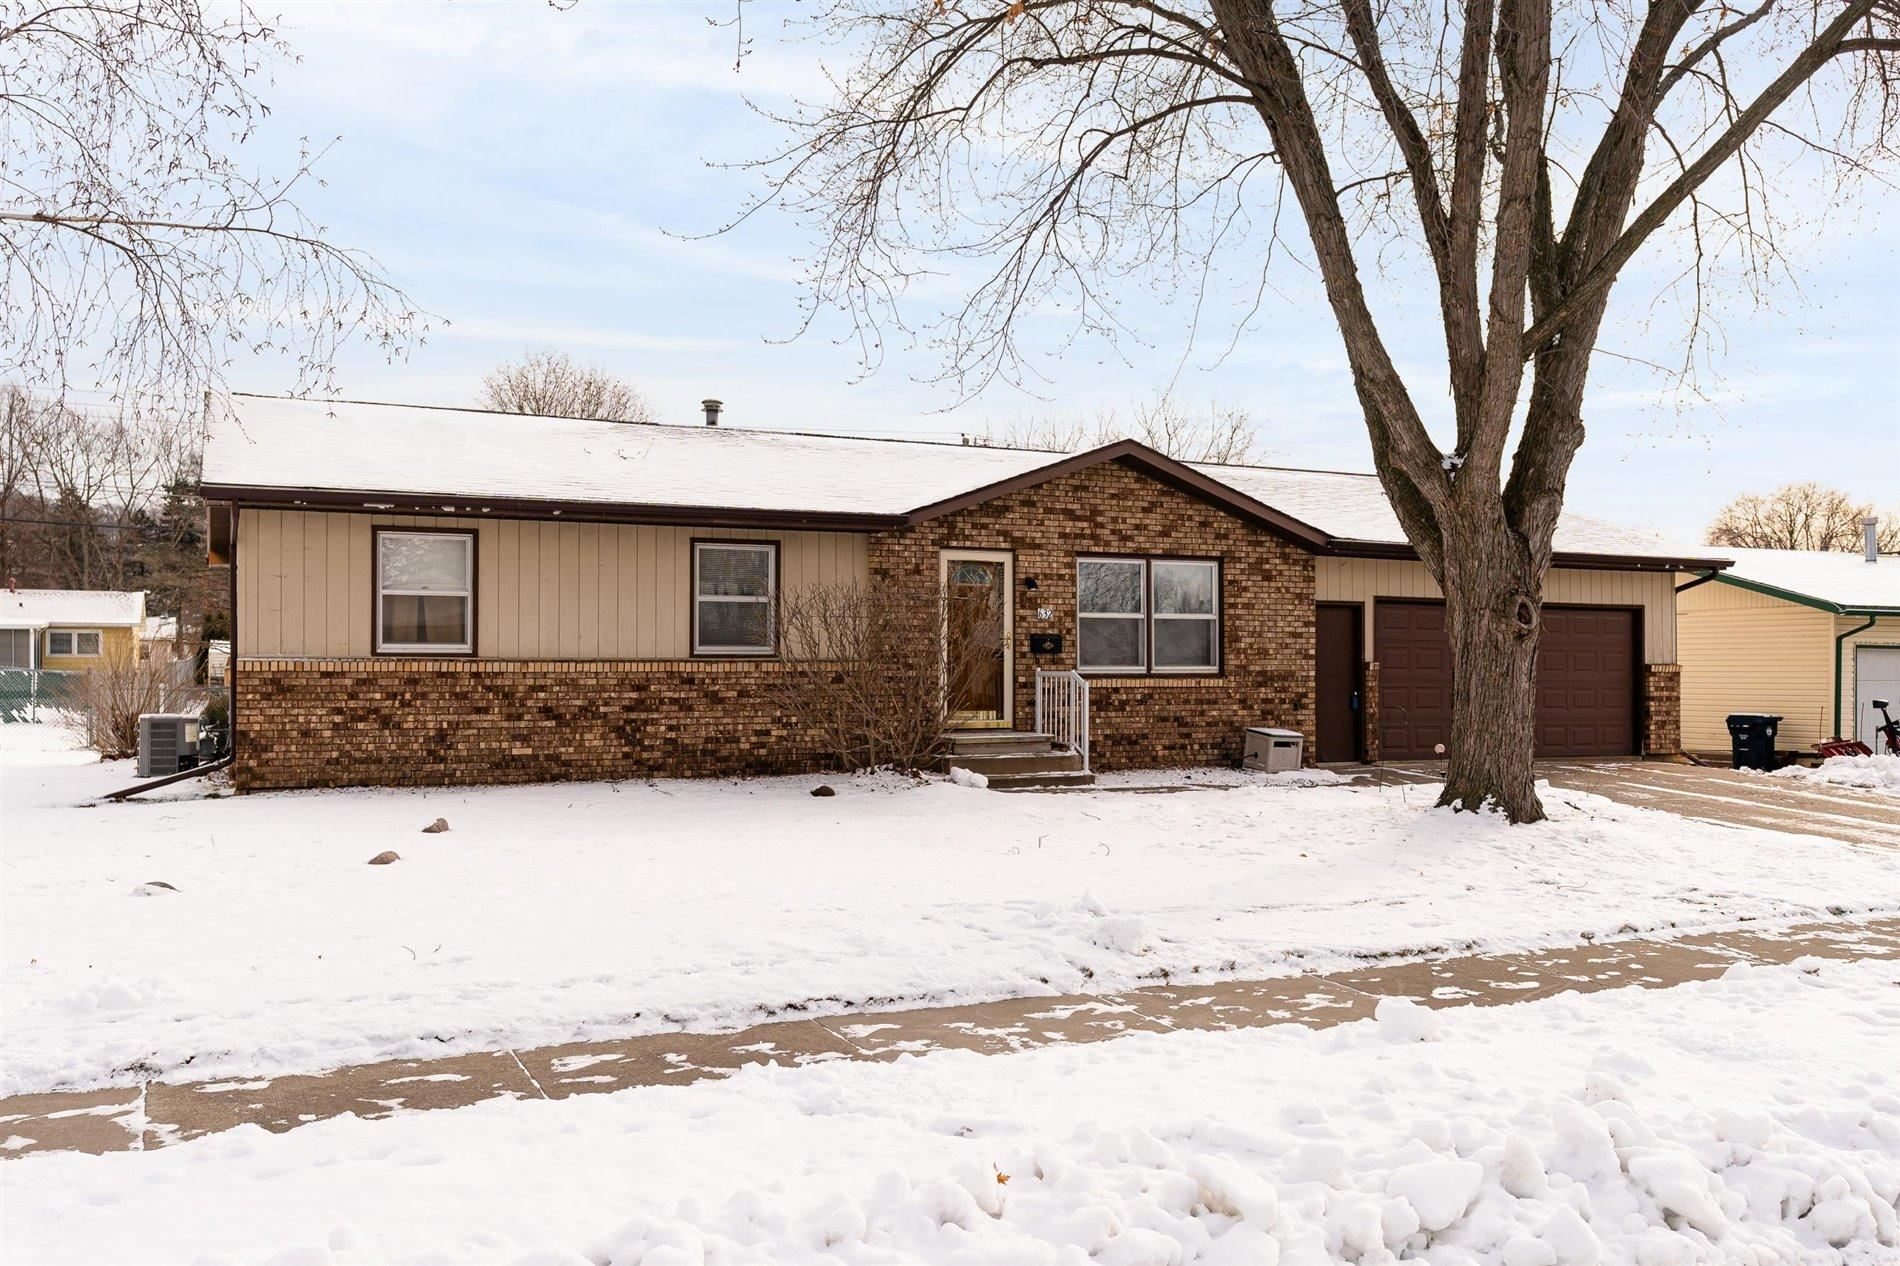 632 11th Ave N, Onalaska, WI 54650 - MLS#: 1724782